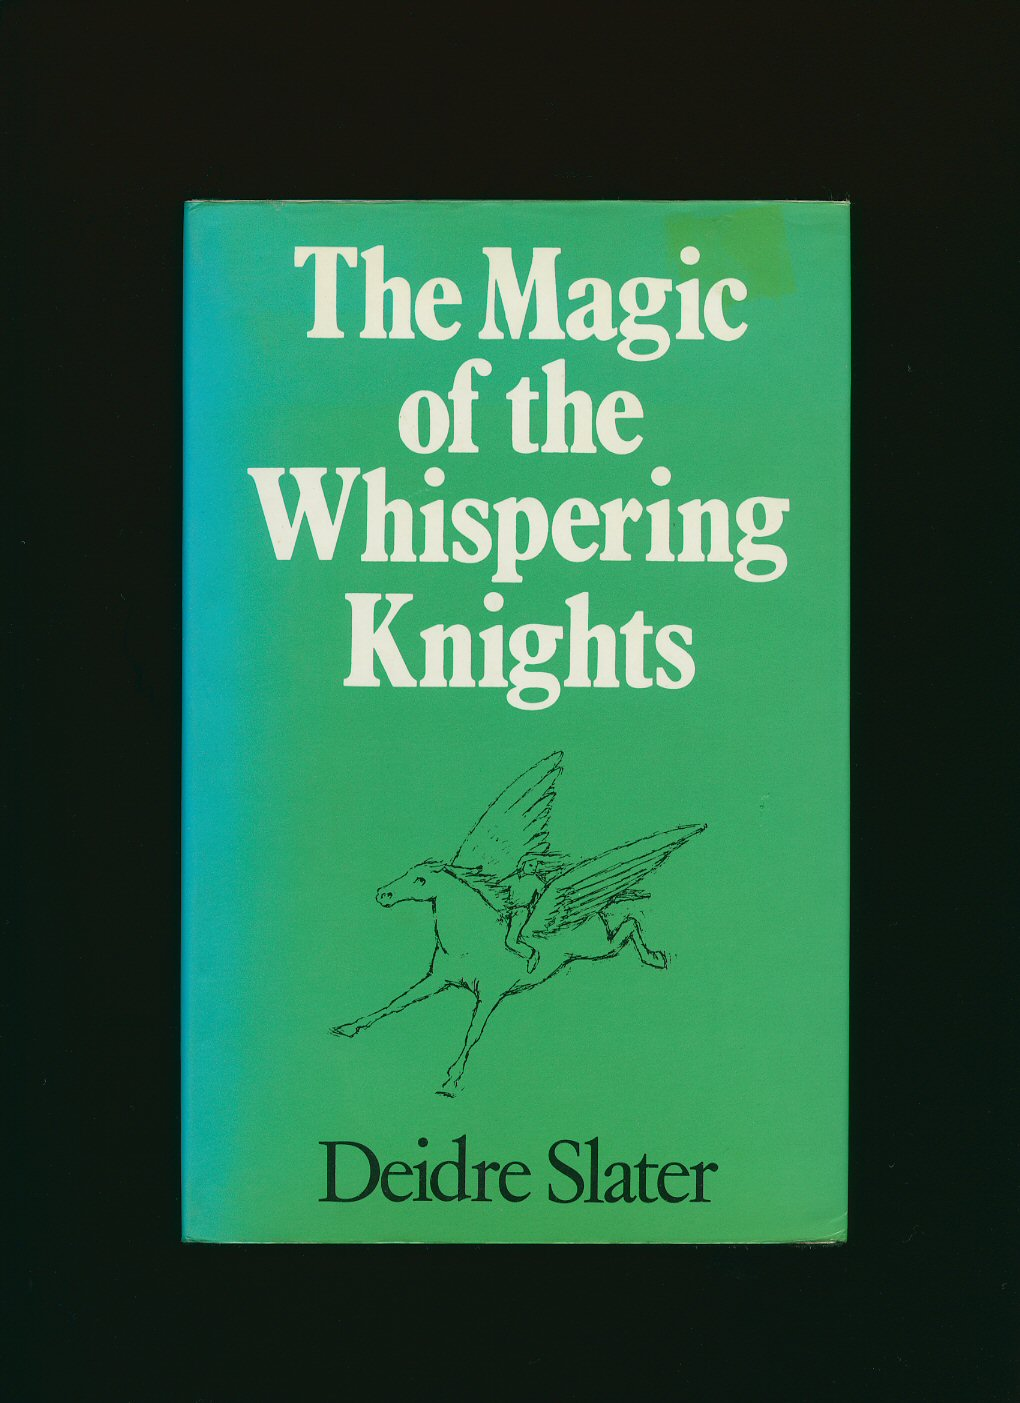 SLATER, DEIDRE [ILLUSTRATED BY MEGAN LEWIS] - The Magic of the Whispering Knights